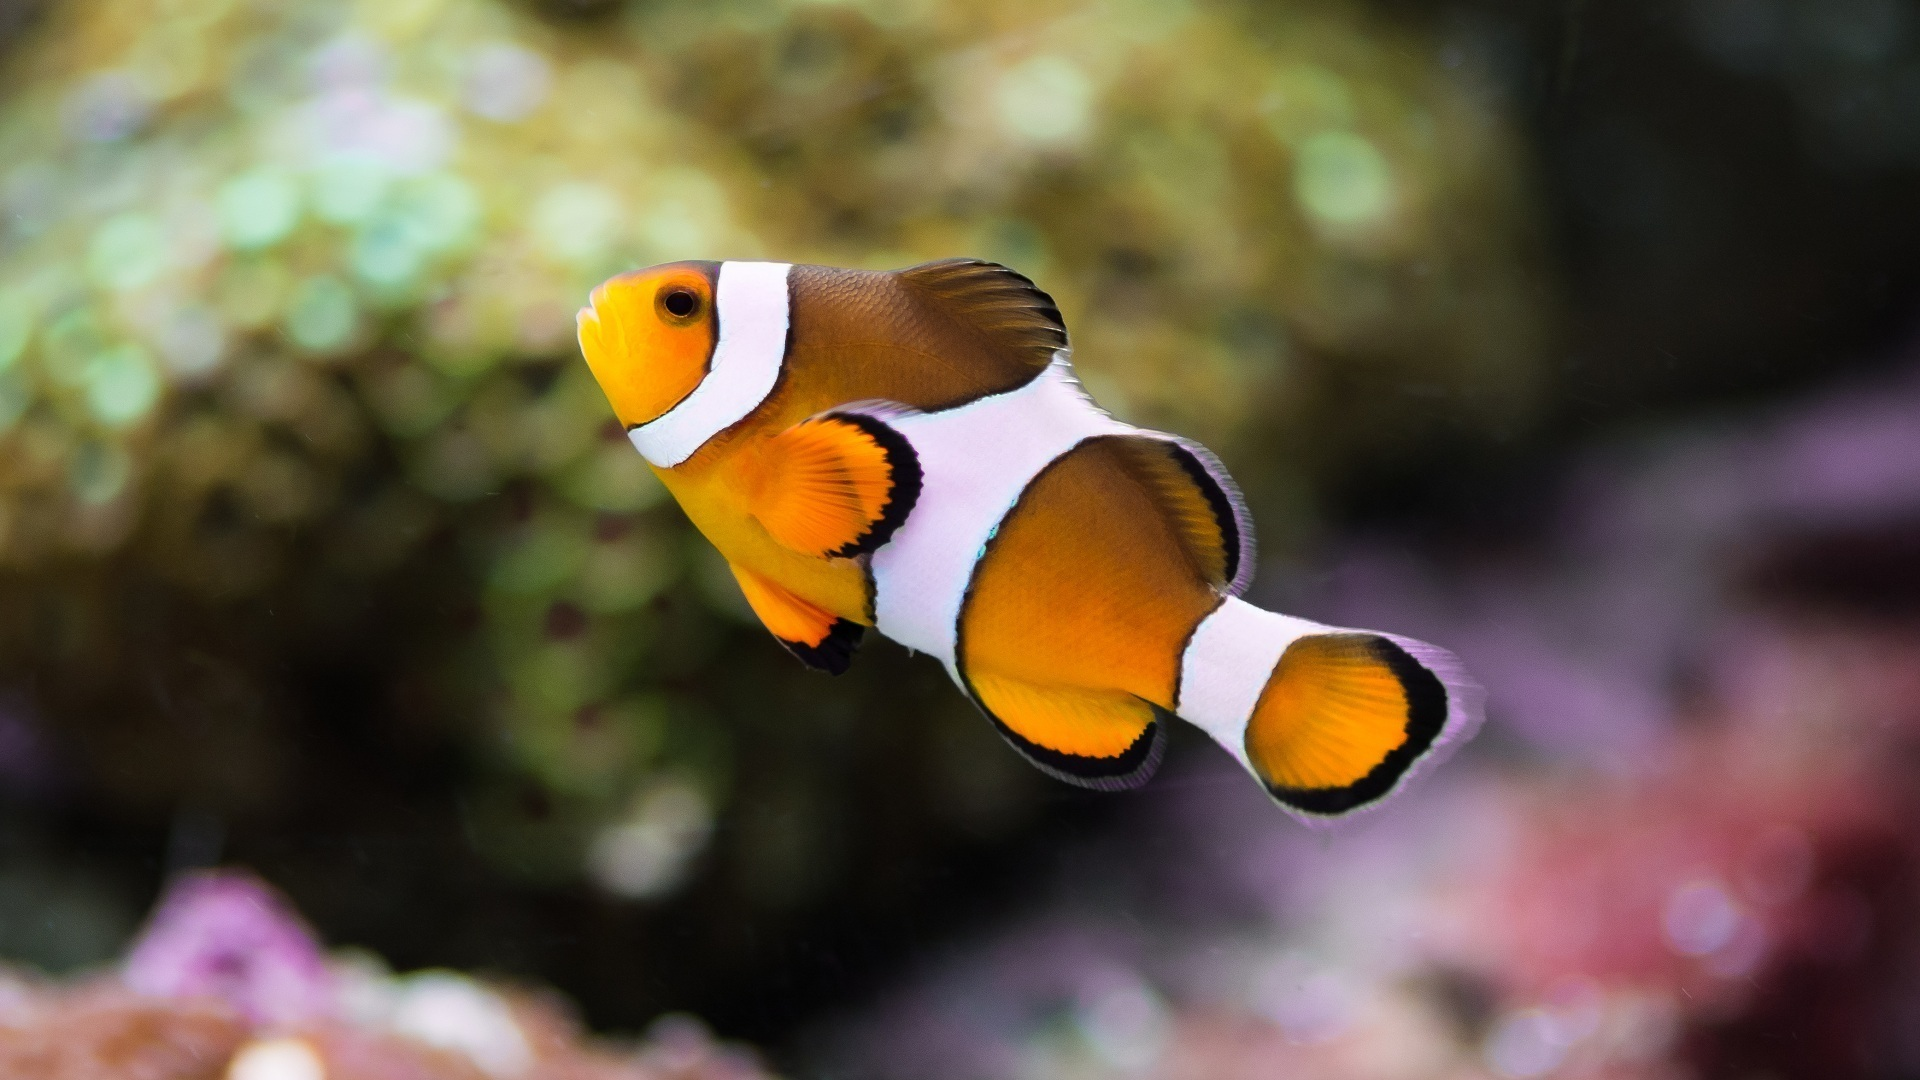 Cute Pet Animals Wallpapers Clownfish Hd Animals 4k Wallpapers Images Backgrounds